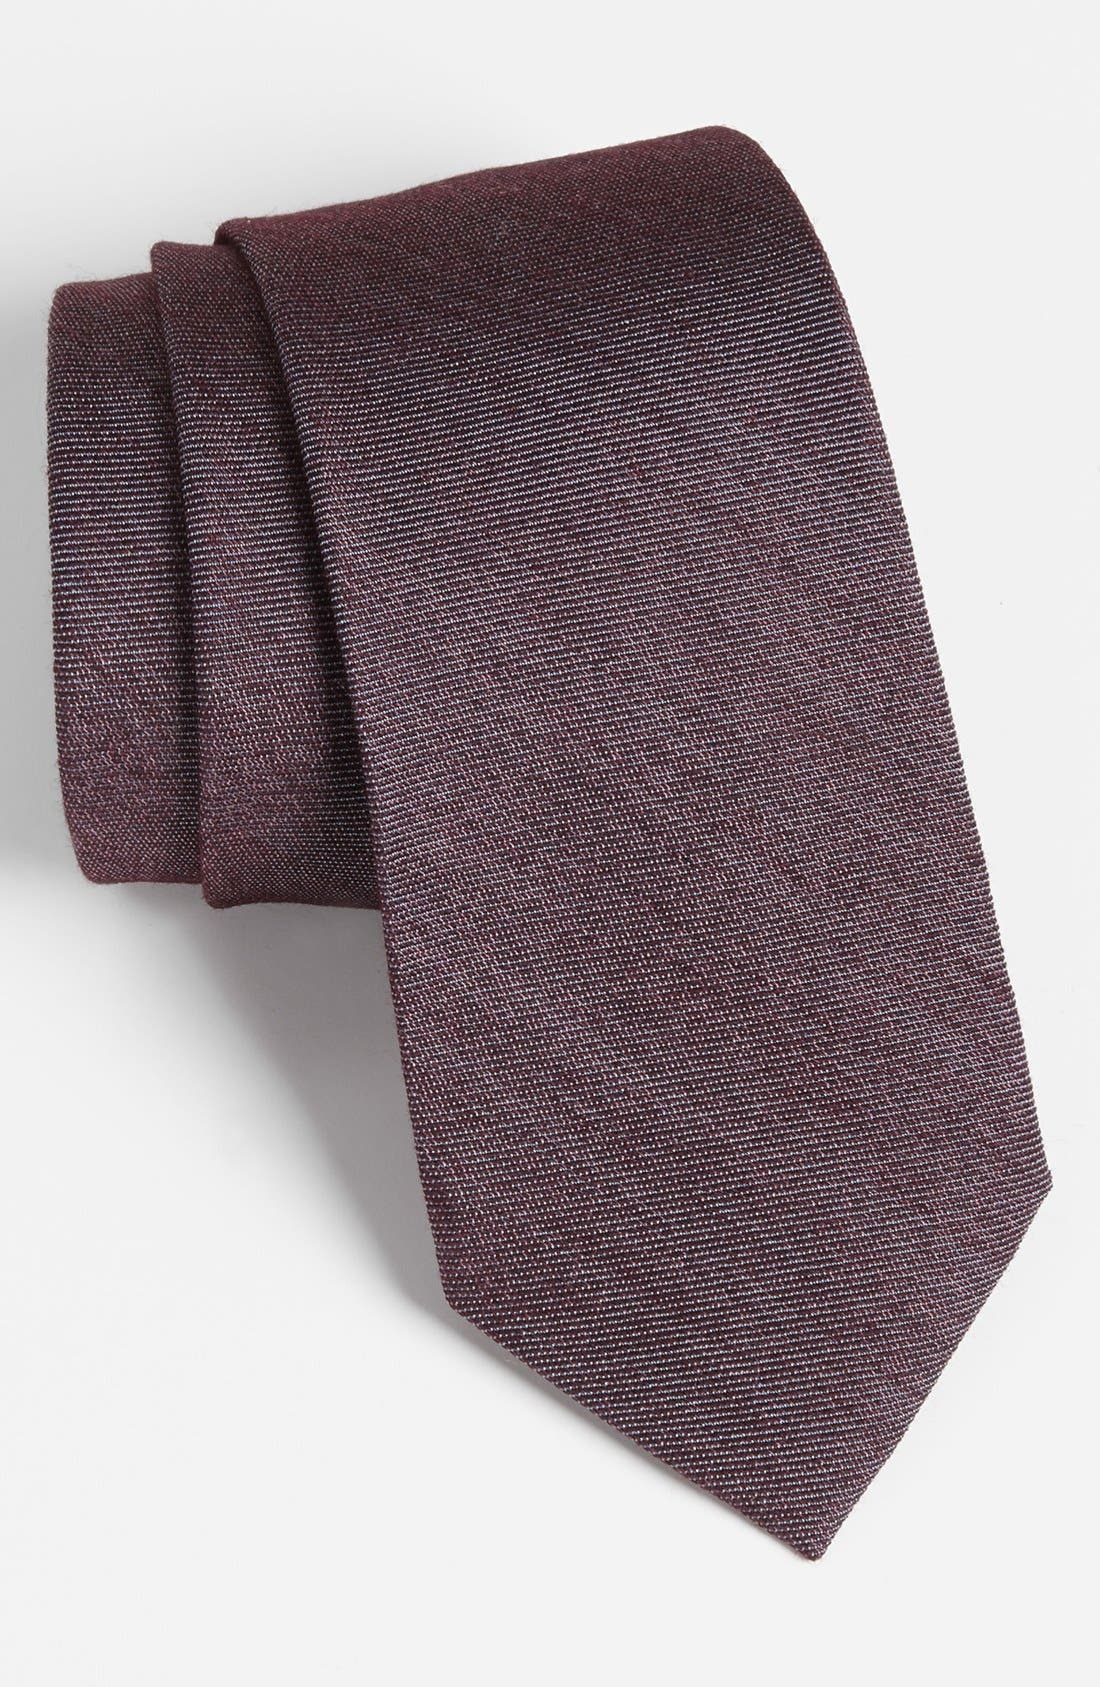 Alternate Image 1 Selected - Z Zegna Woven Silk & Wool Tie